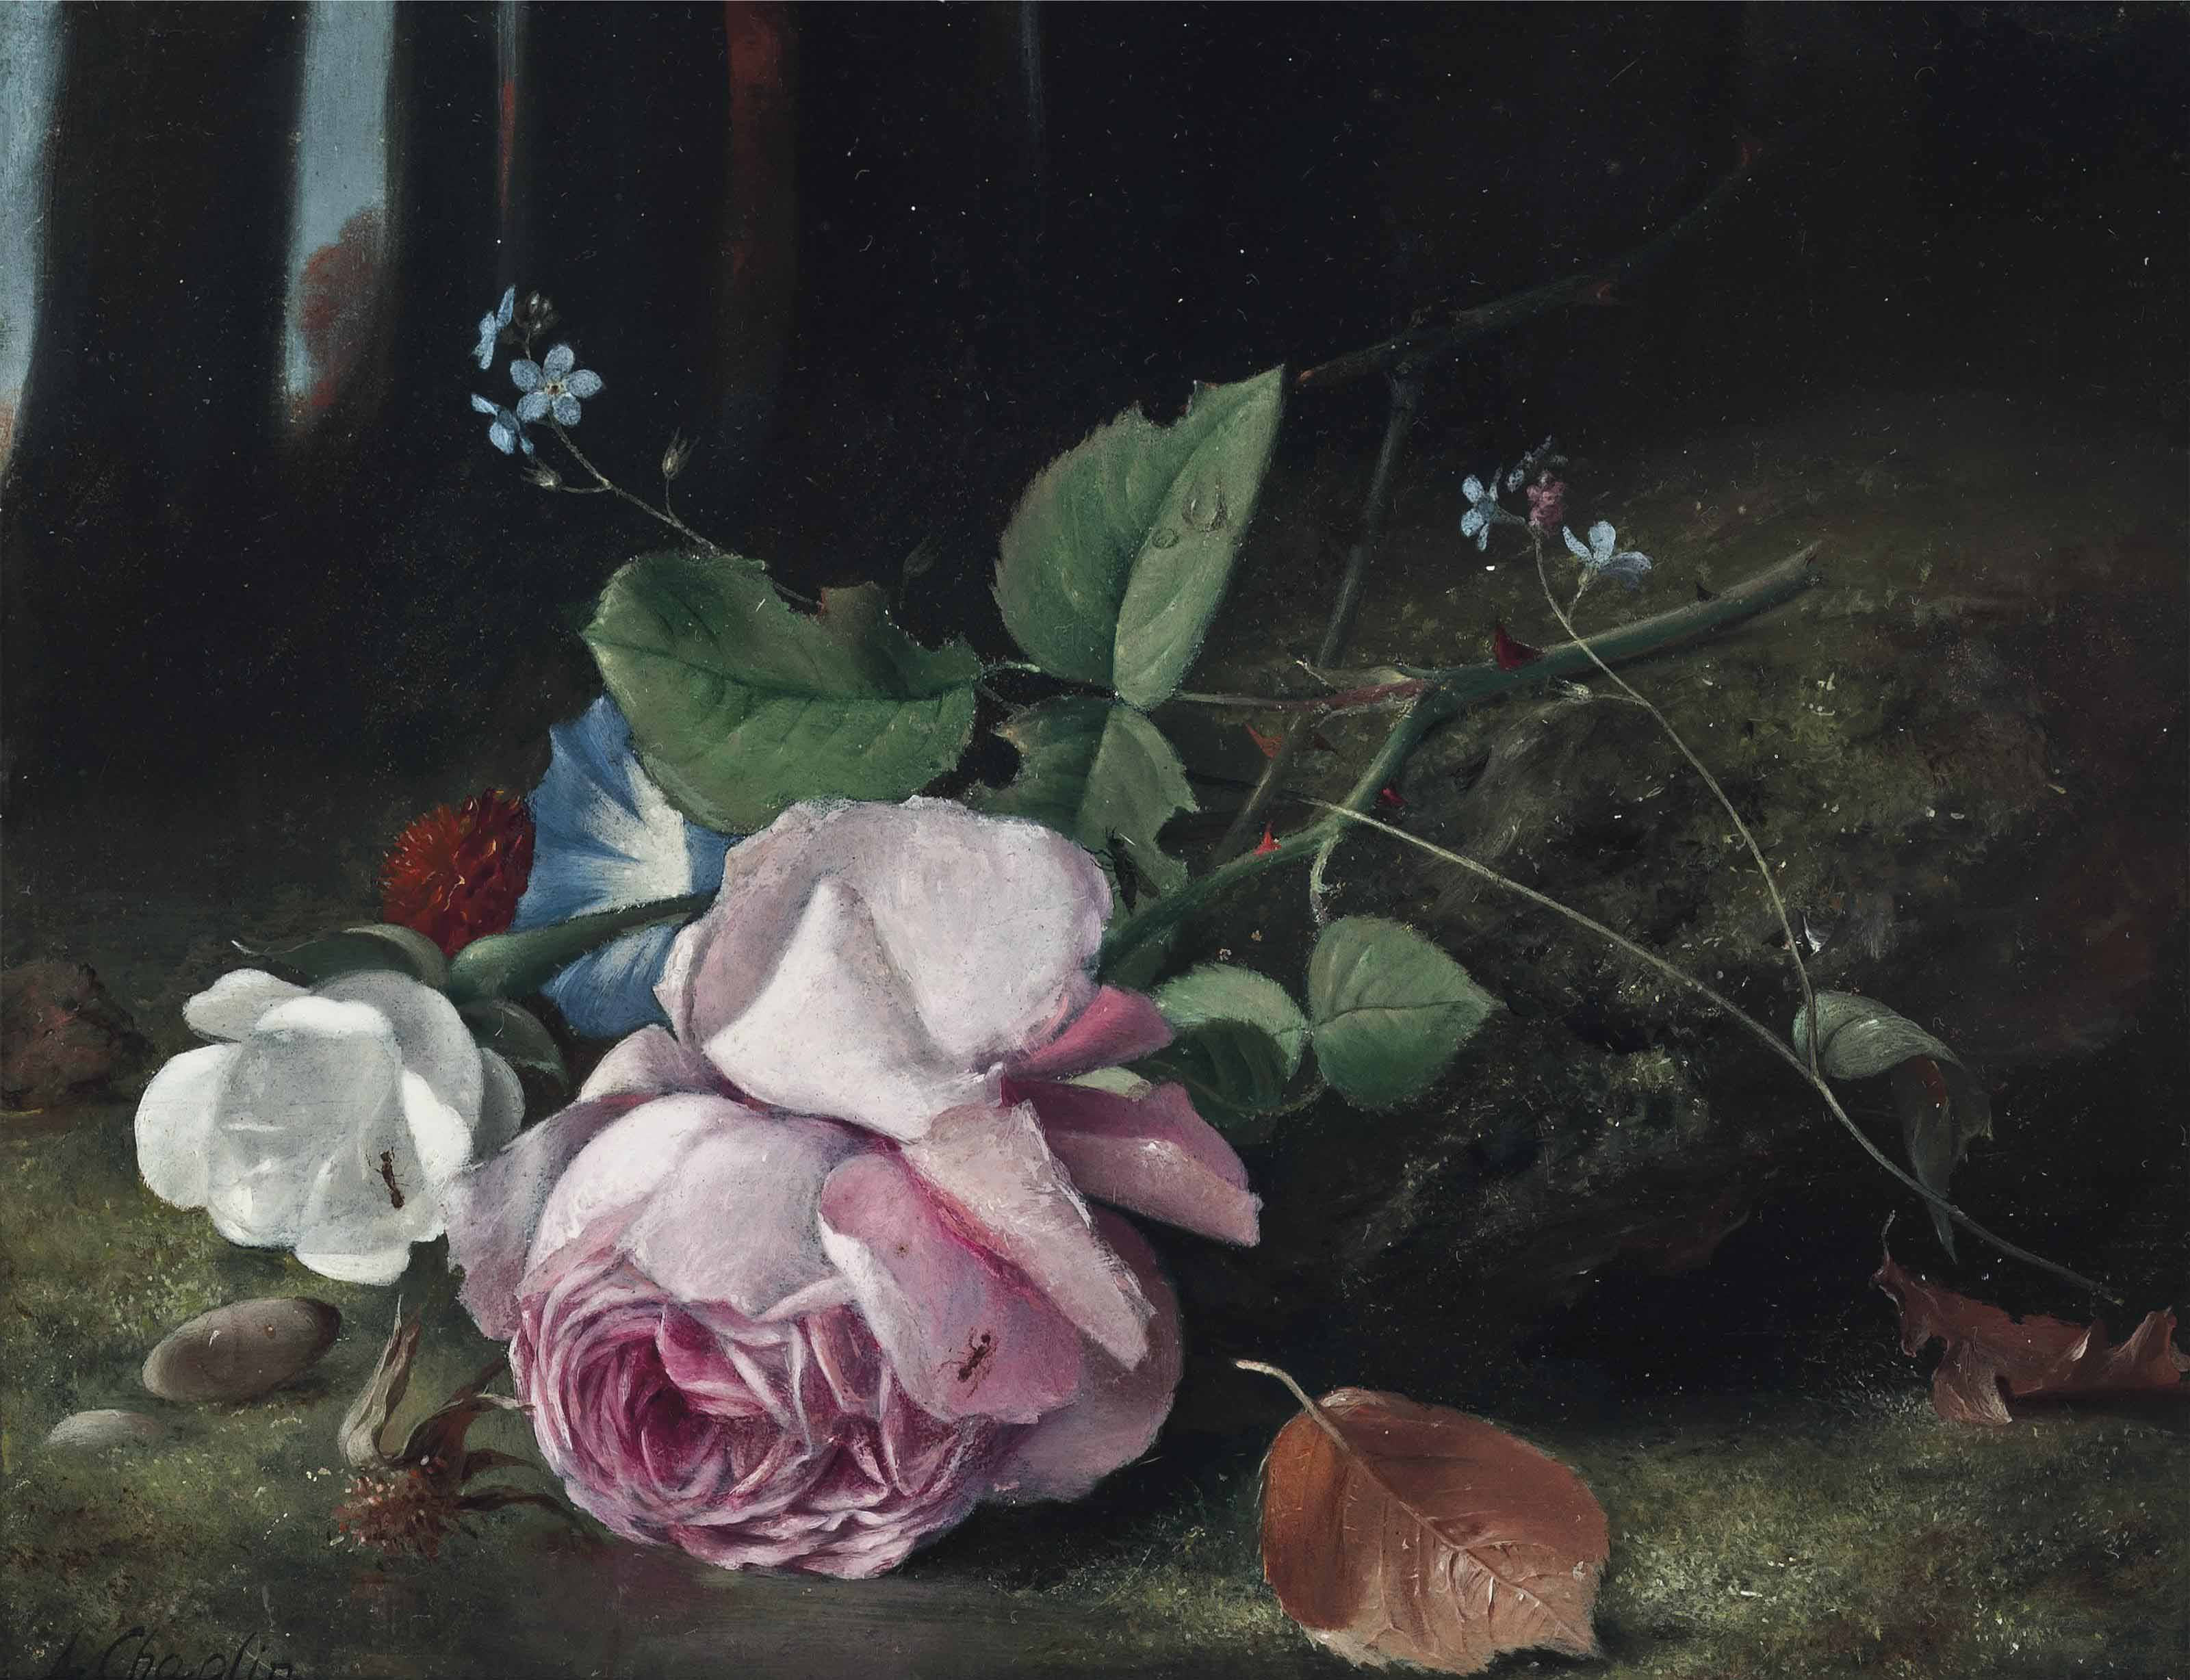 Roses, Forget-me-nots, and Convolvulus in a forest clearing